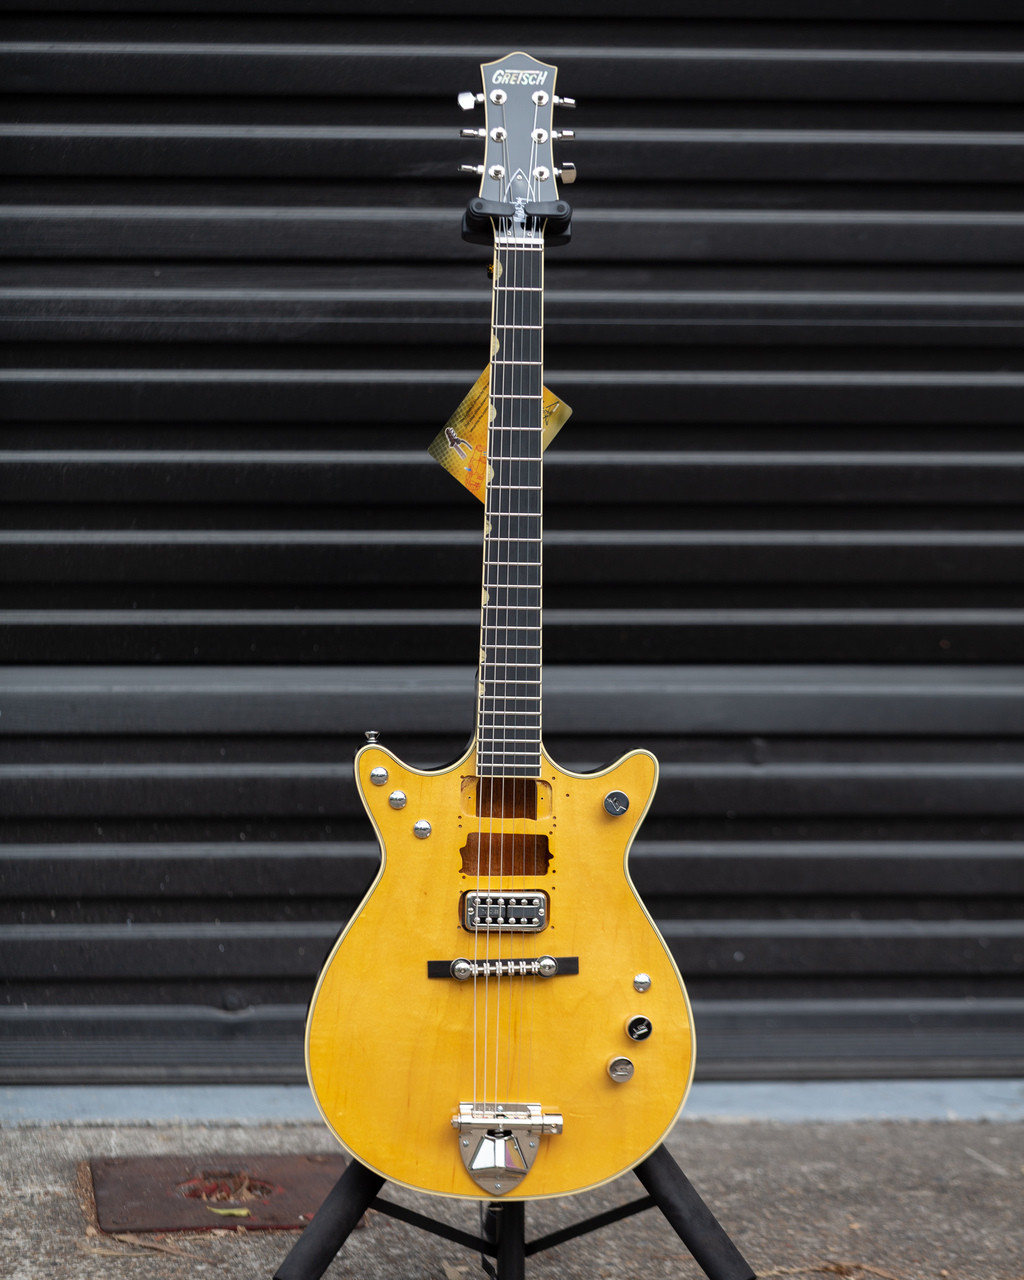 gretsch professional g6131 my malcolm young signature jet natural on sale at guitar world. Black Bedroom Furniture Sets. Home Design Ideas